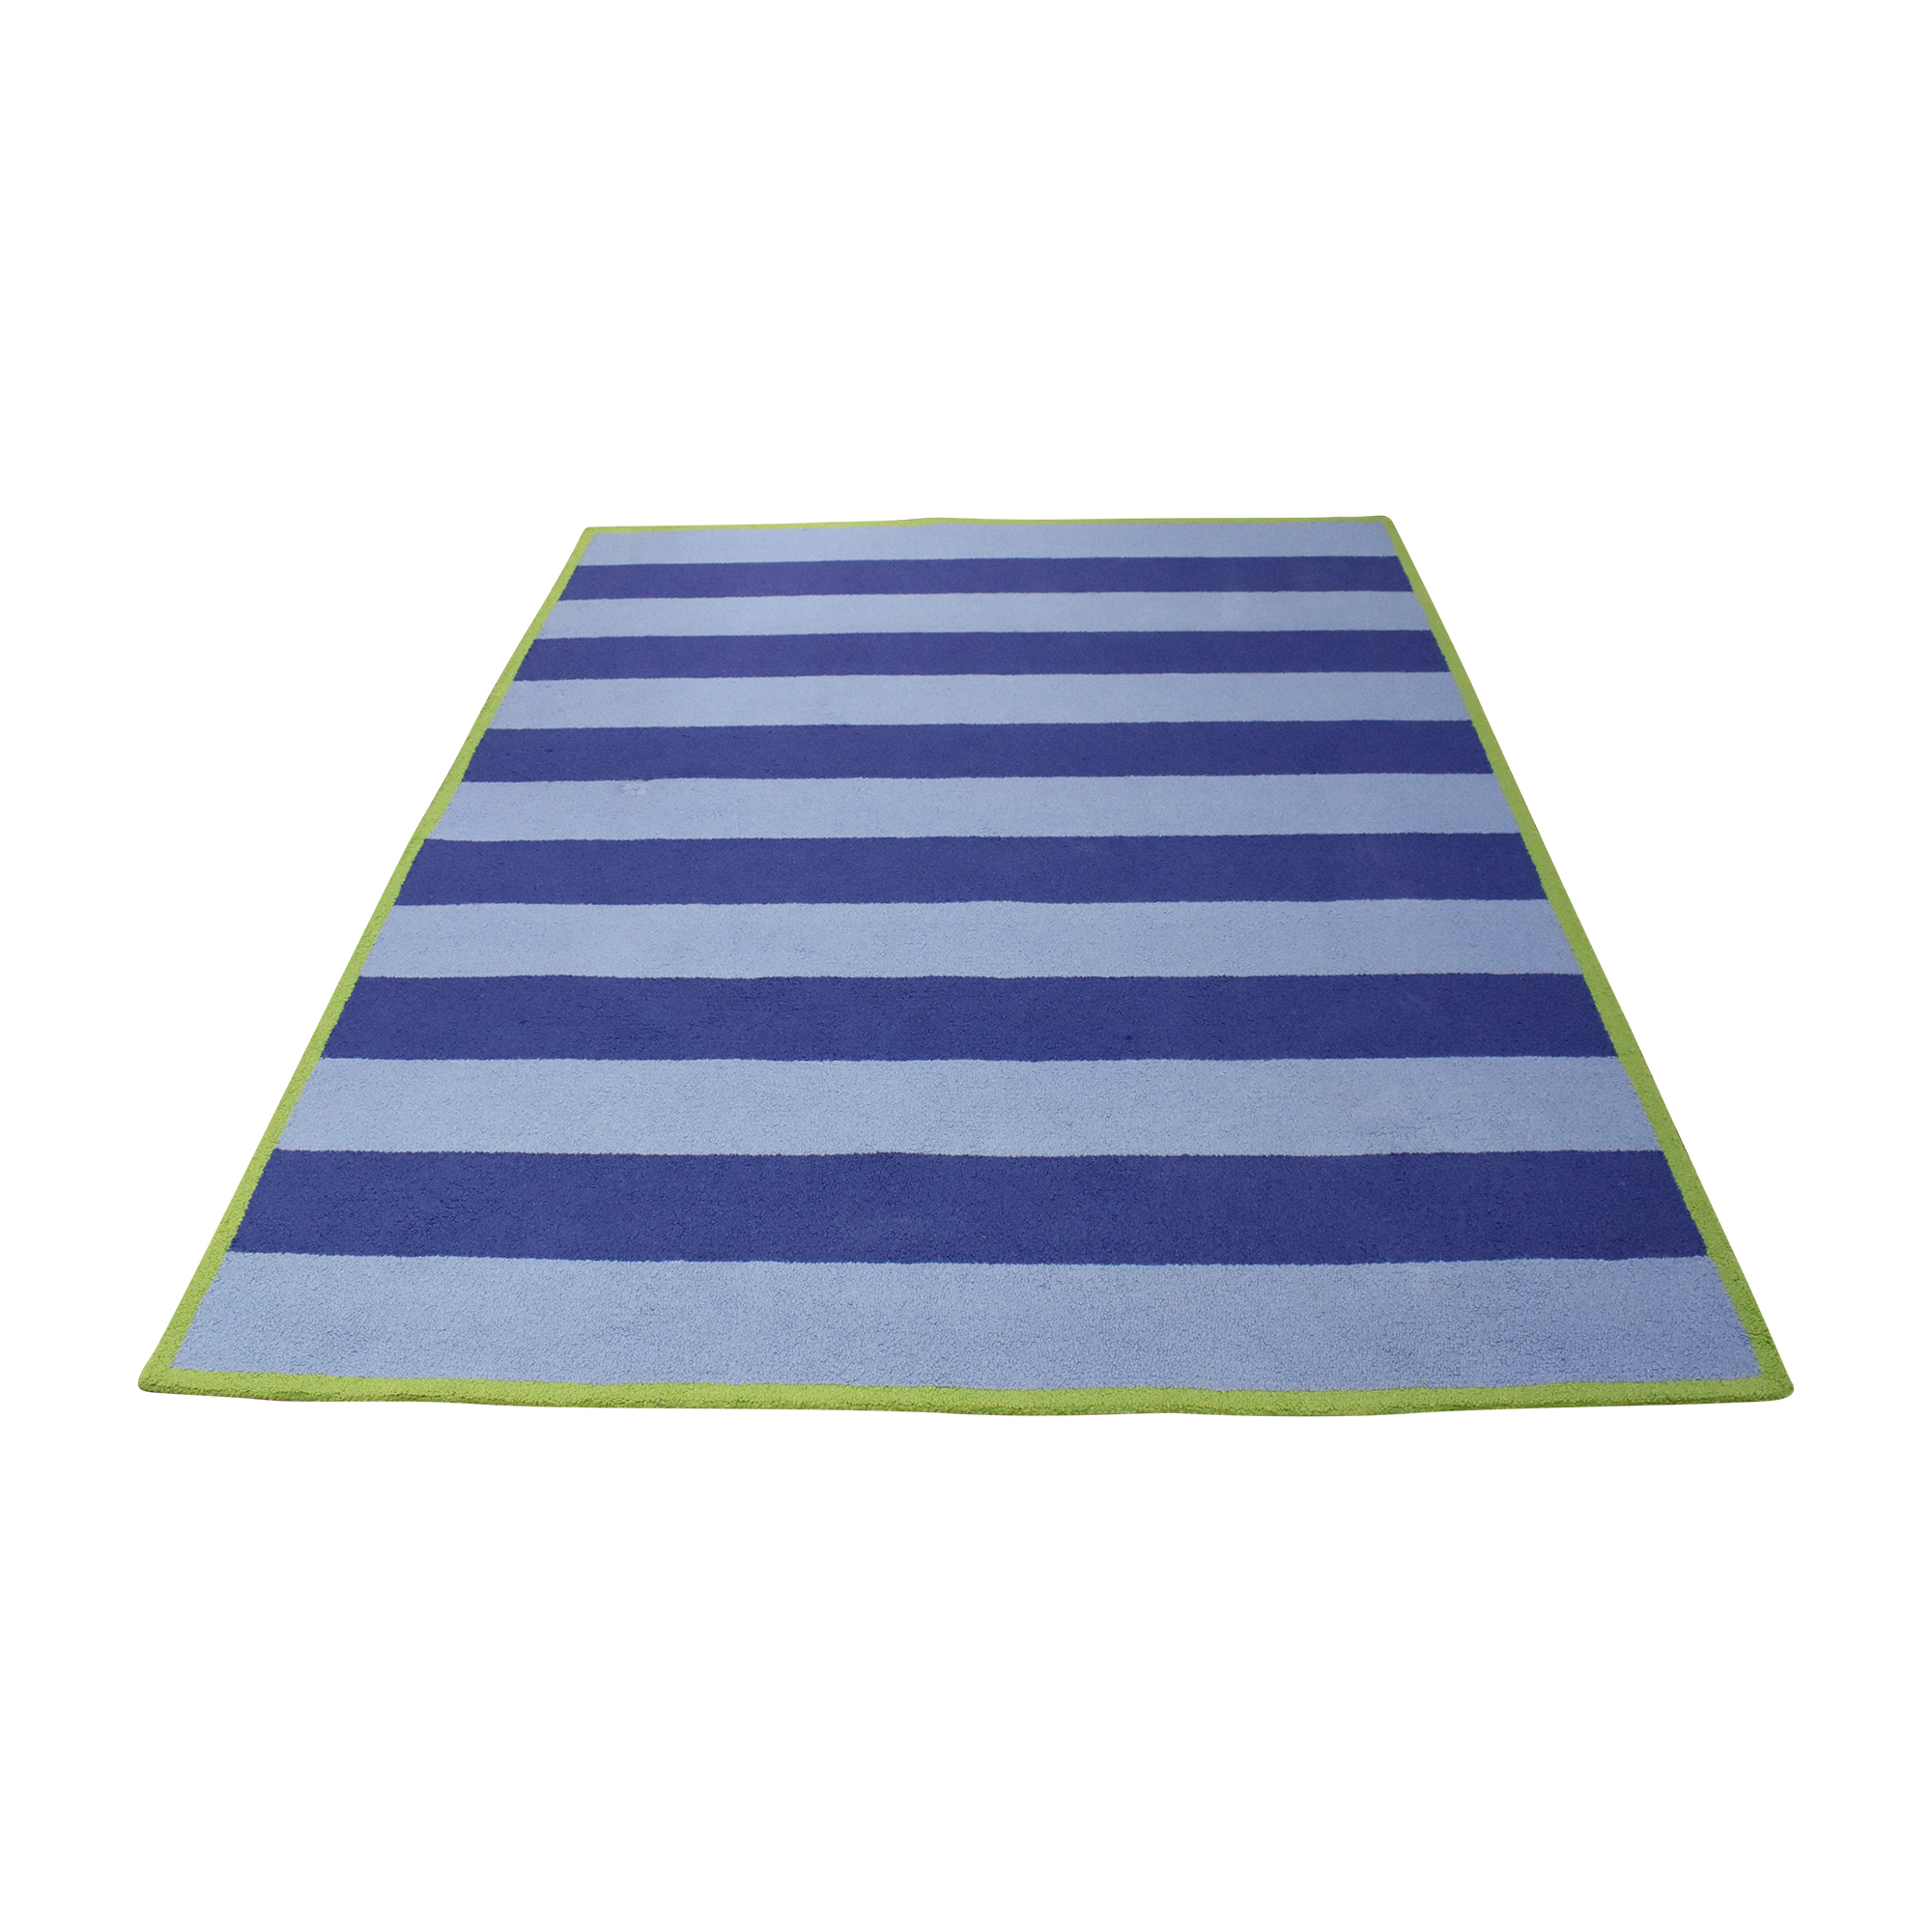 shop Pottery Barn Kids Pottery Barn Kids Rugby Area Rug online